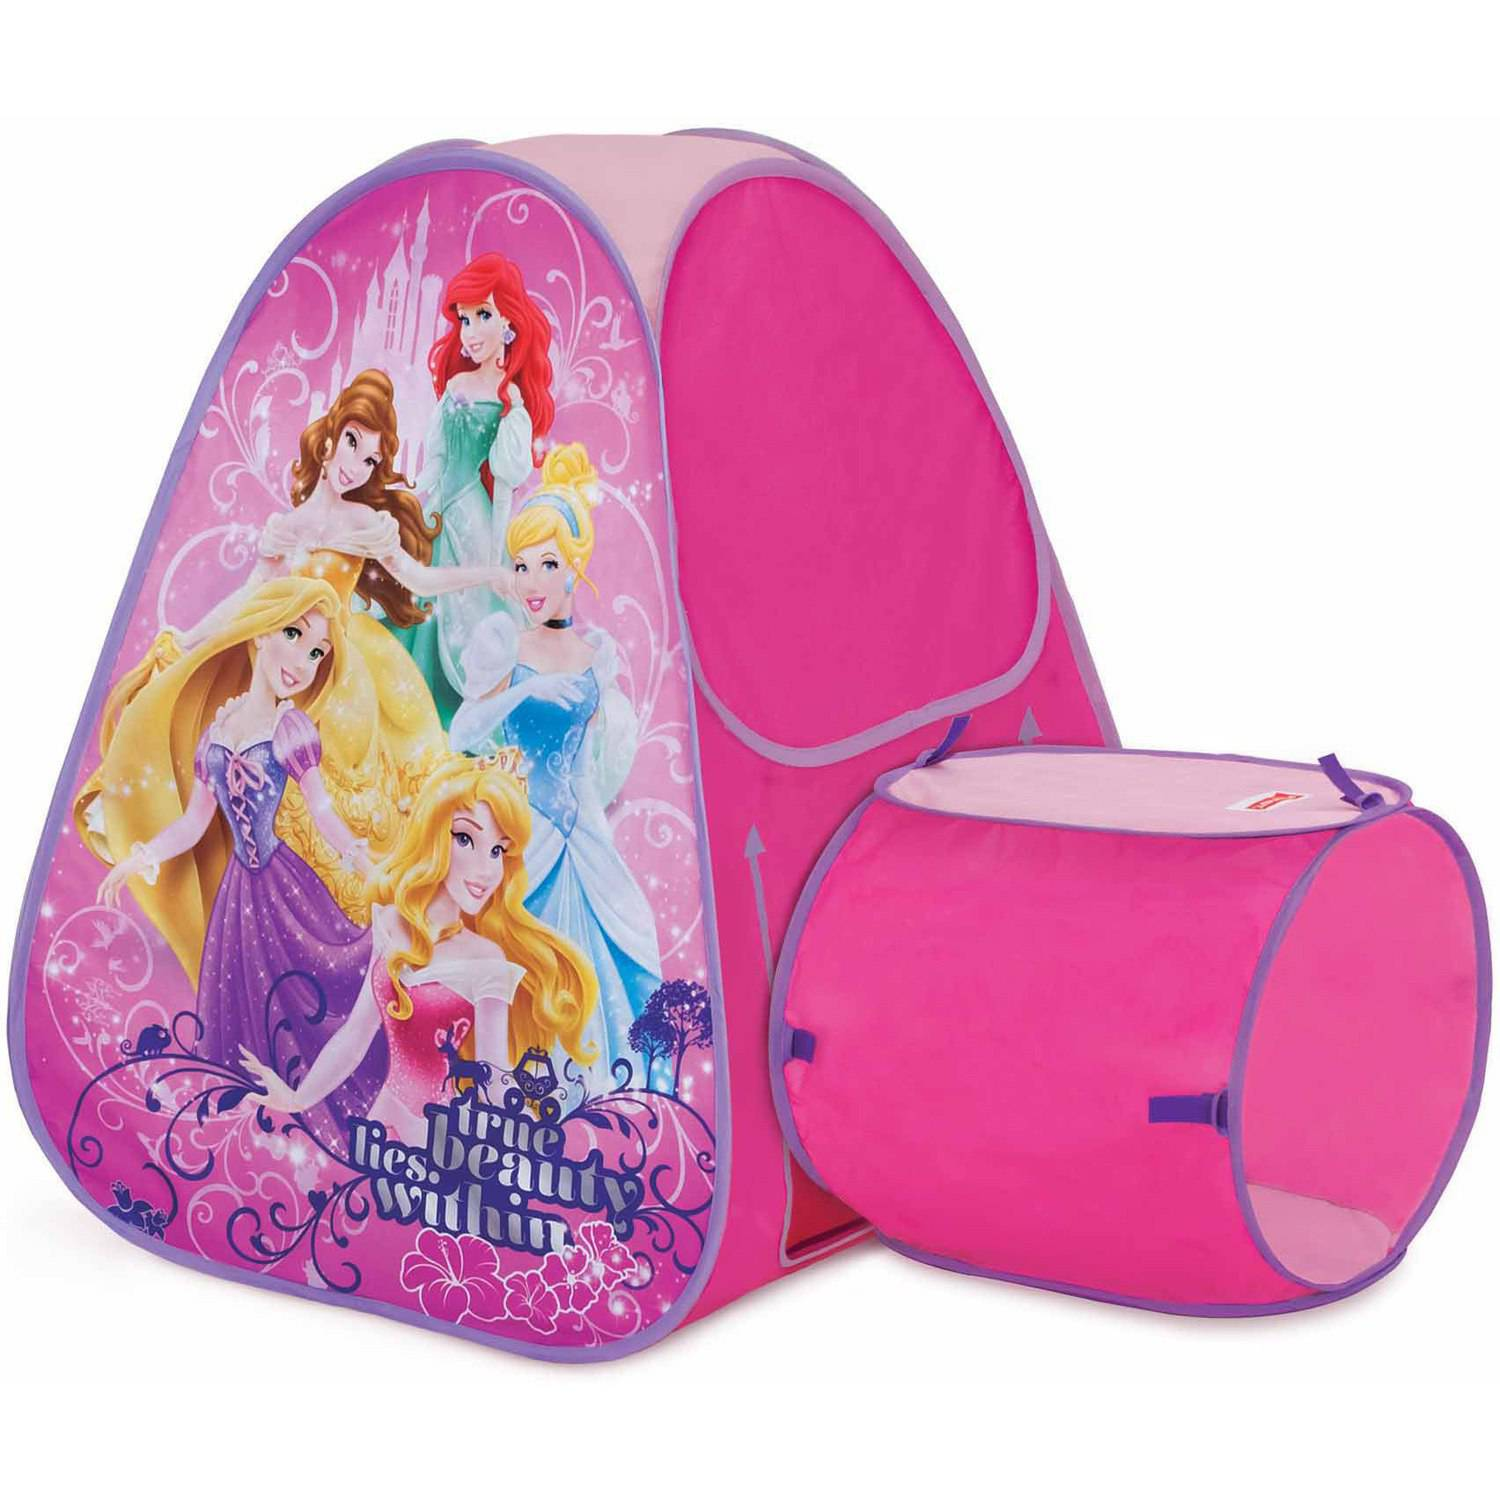 Playhut Disney Princess Hide About Tent and Tunnel Port